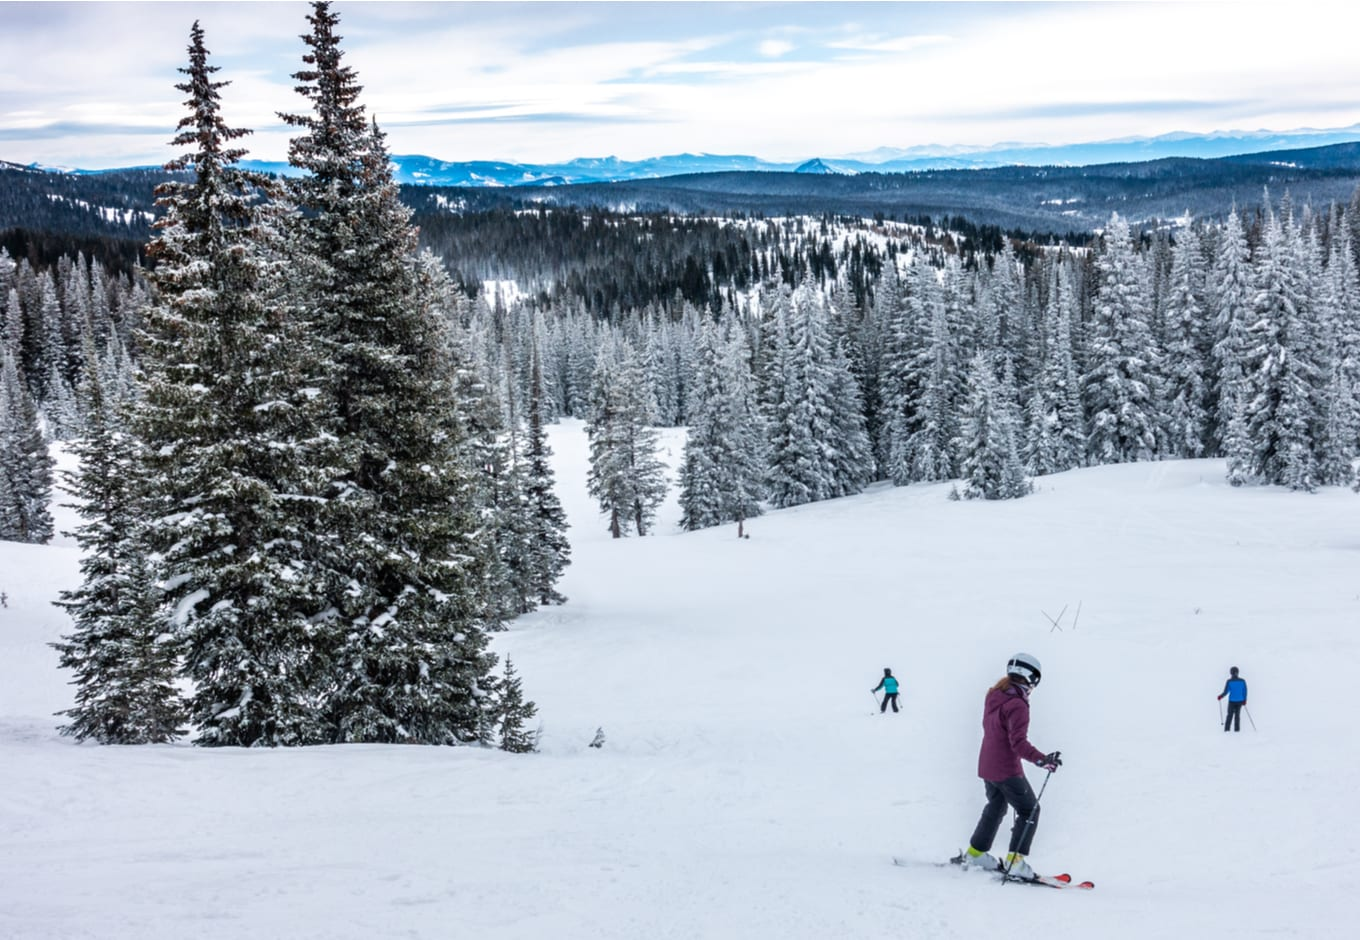 People skiing at the Steamboat Springs Ski Resort, on Mount Werner, Colorado.